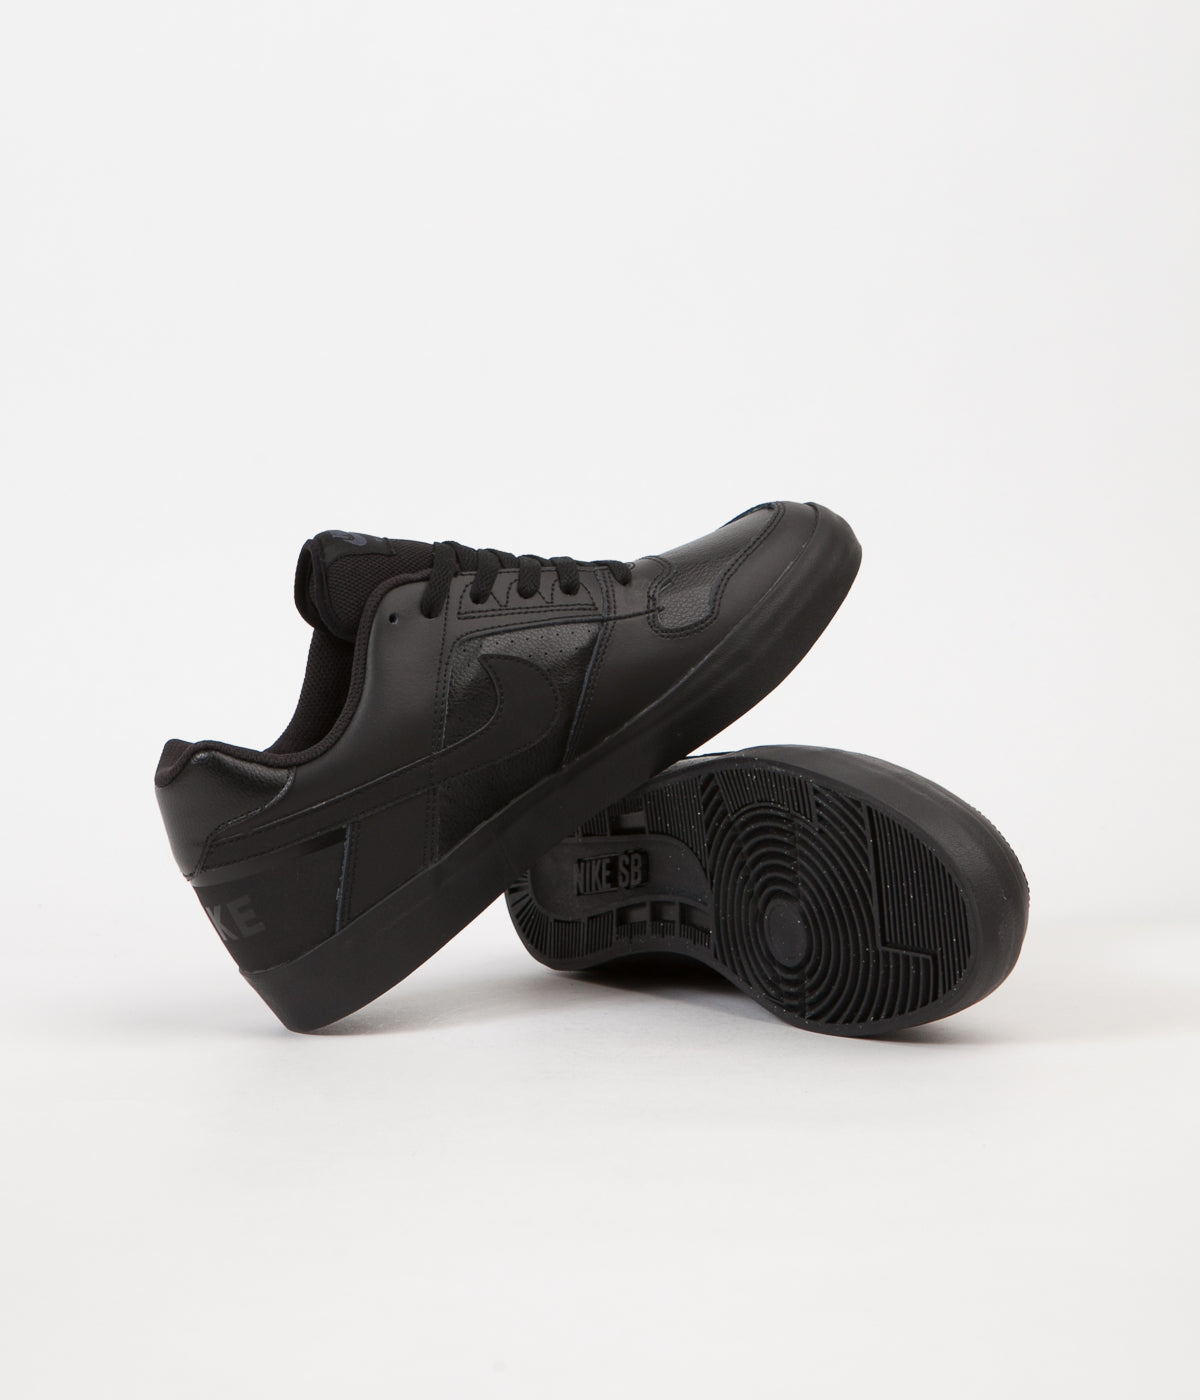 5ad3a76ffb4 ... Nike SB Delta Force Vulc Shoes - Black   Black - Anthracite ...